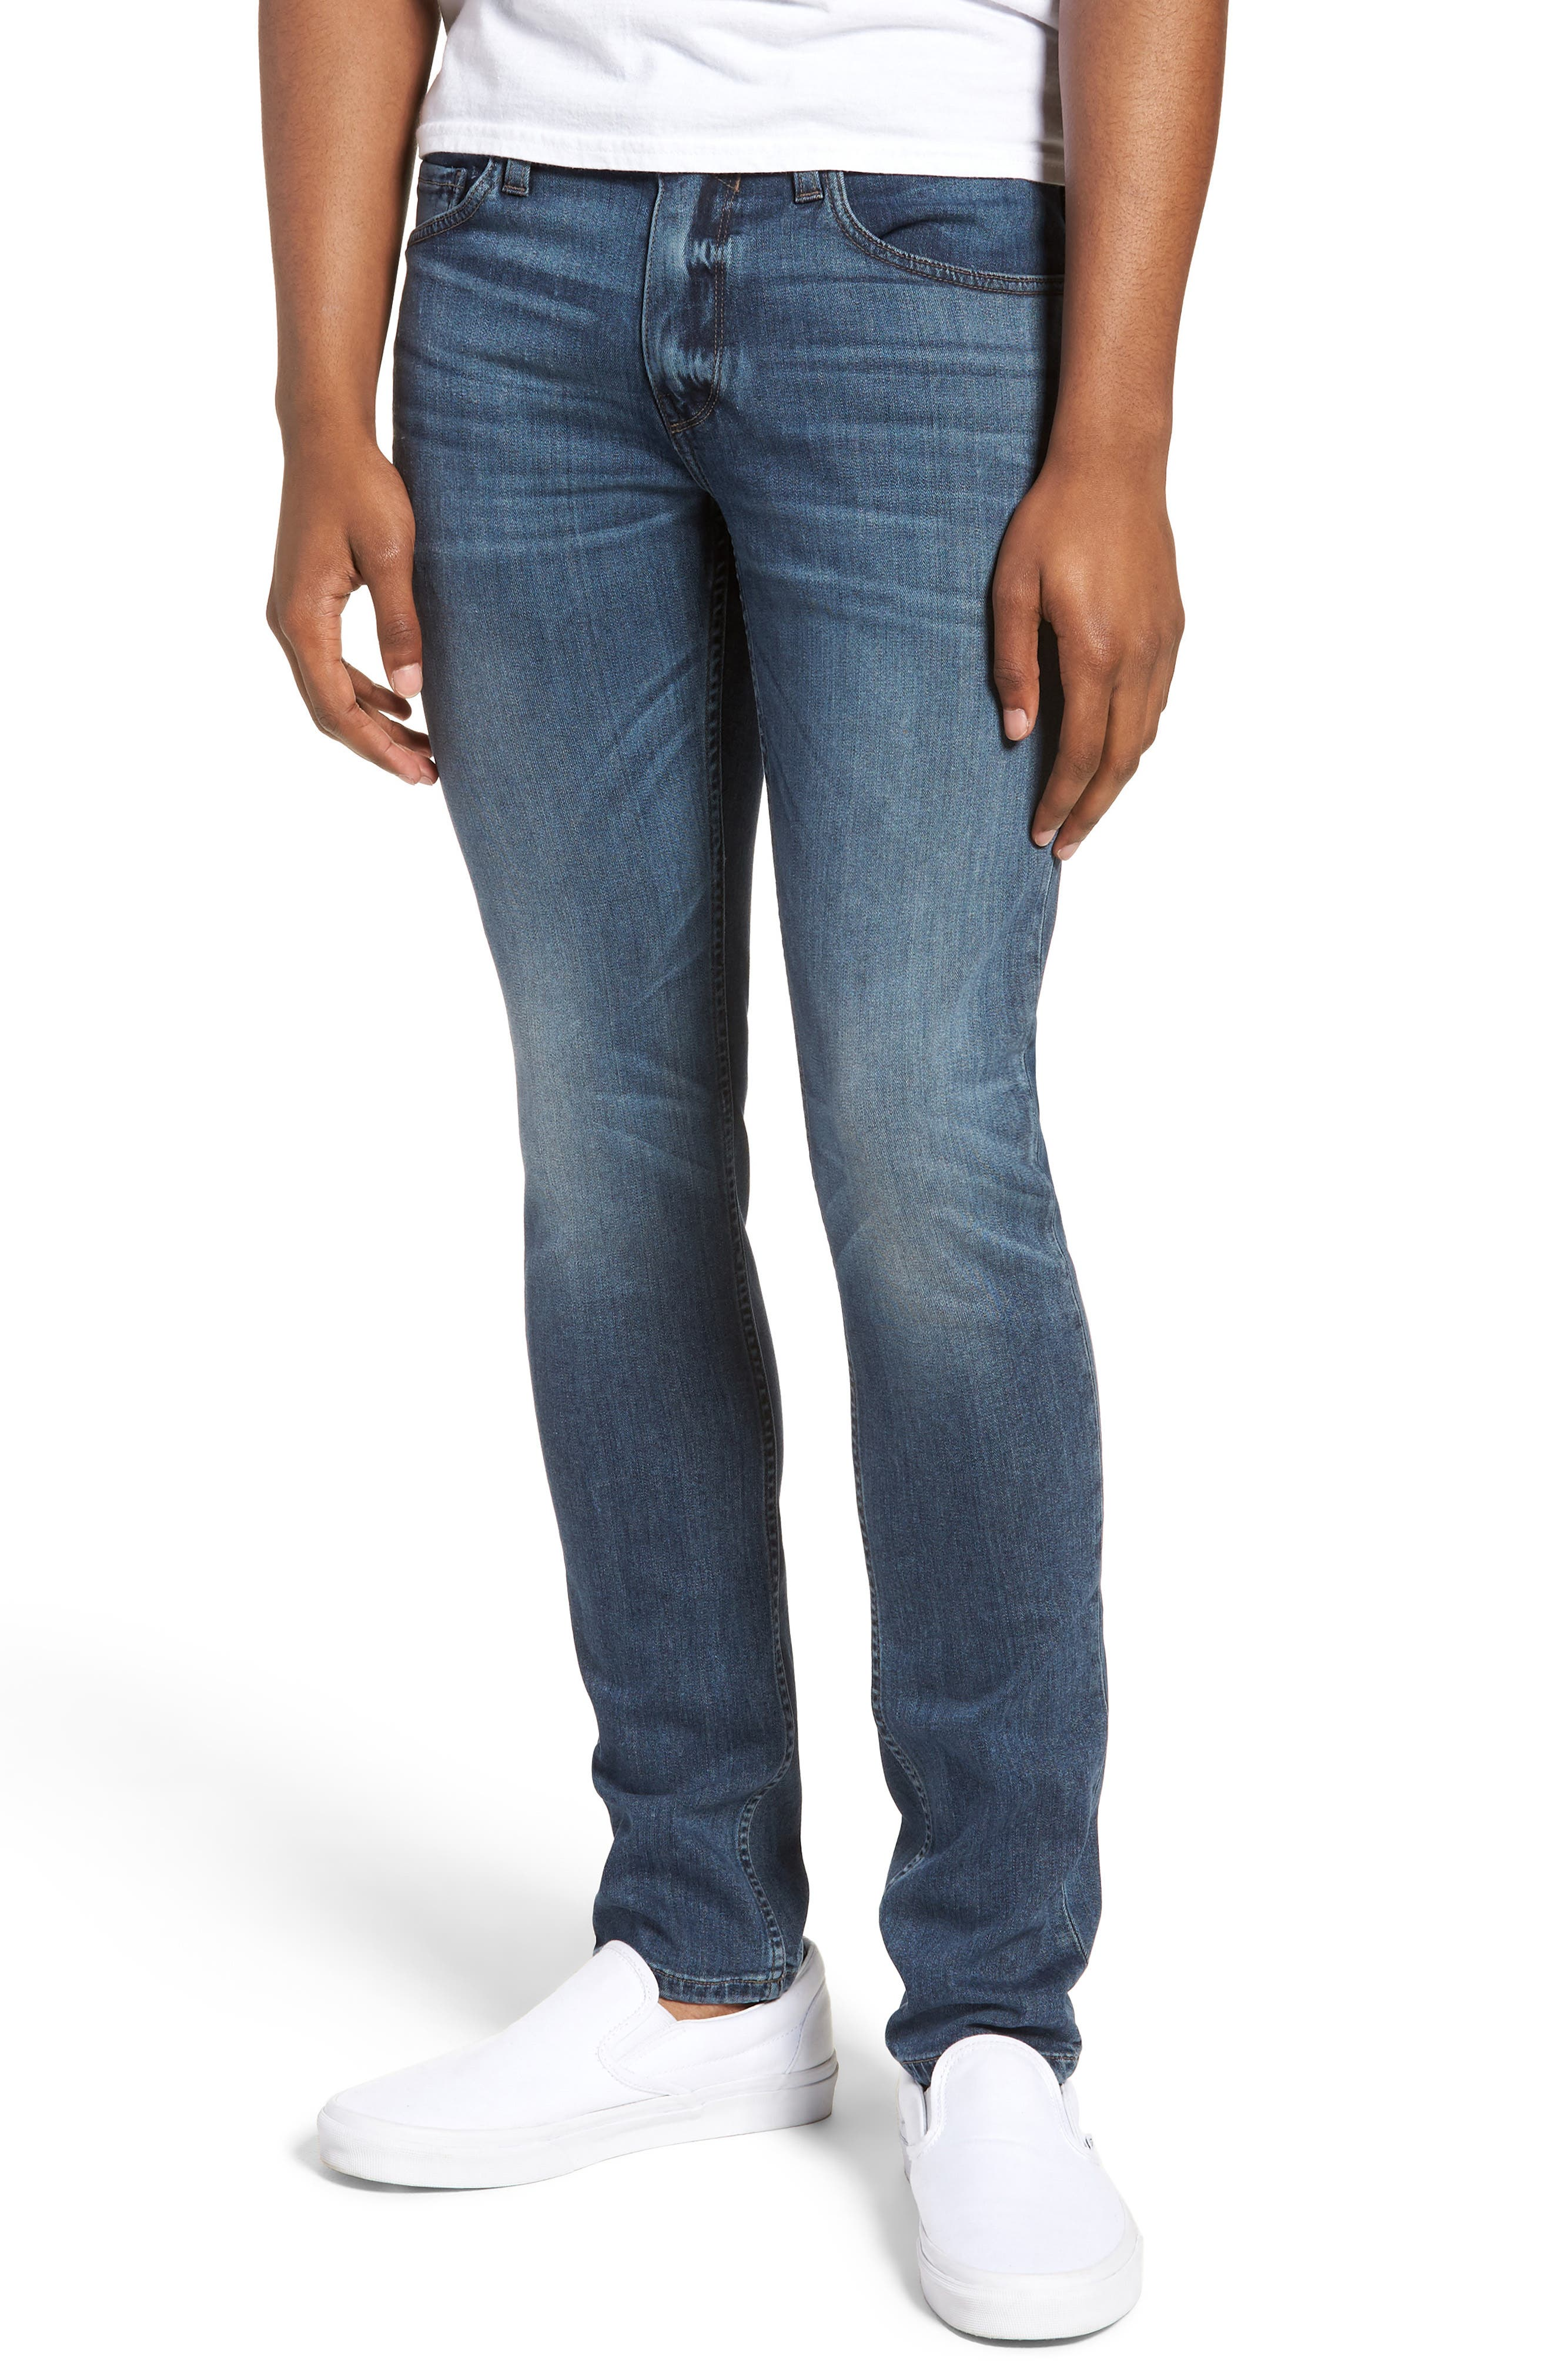 Transcend - Croft Skinny Fit Jeans,                             Main thumbnail 1, color,                             GRAMMERCY